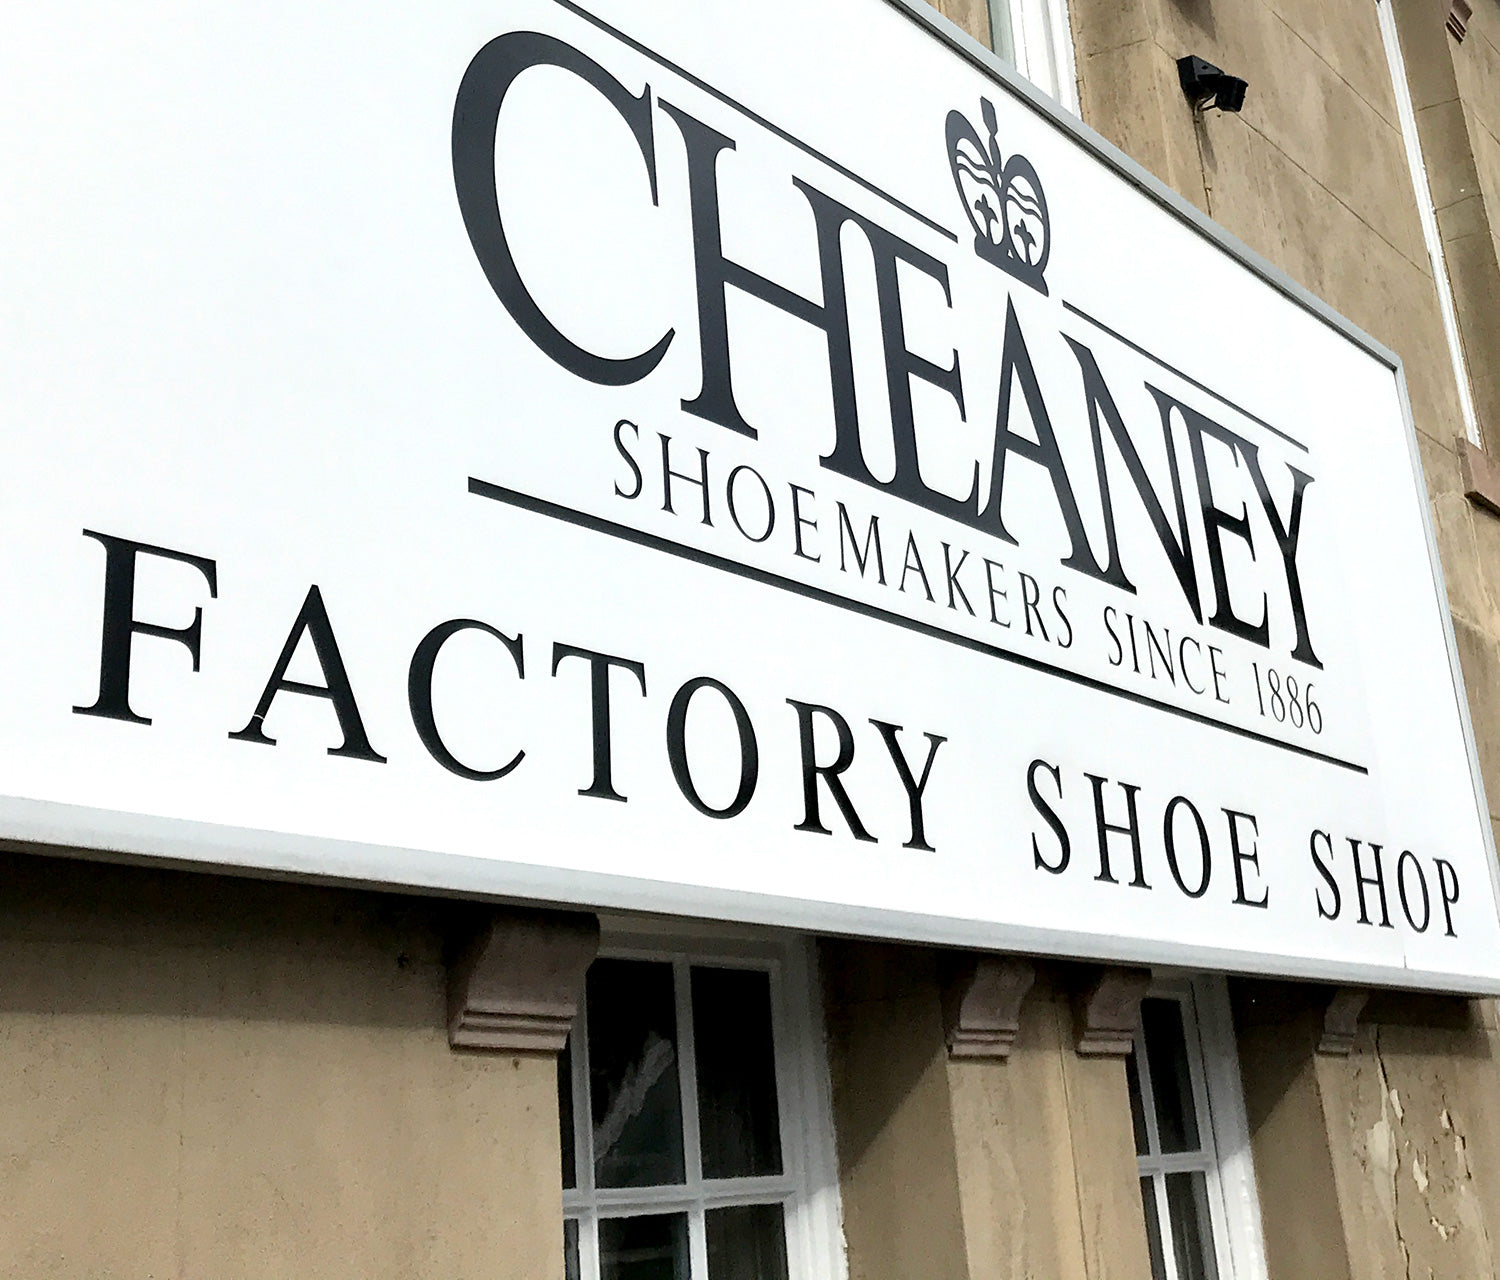 Cheaney factory shop